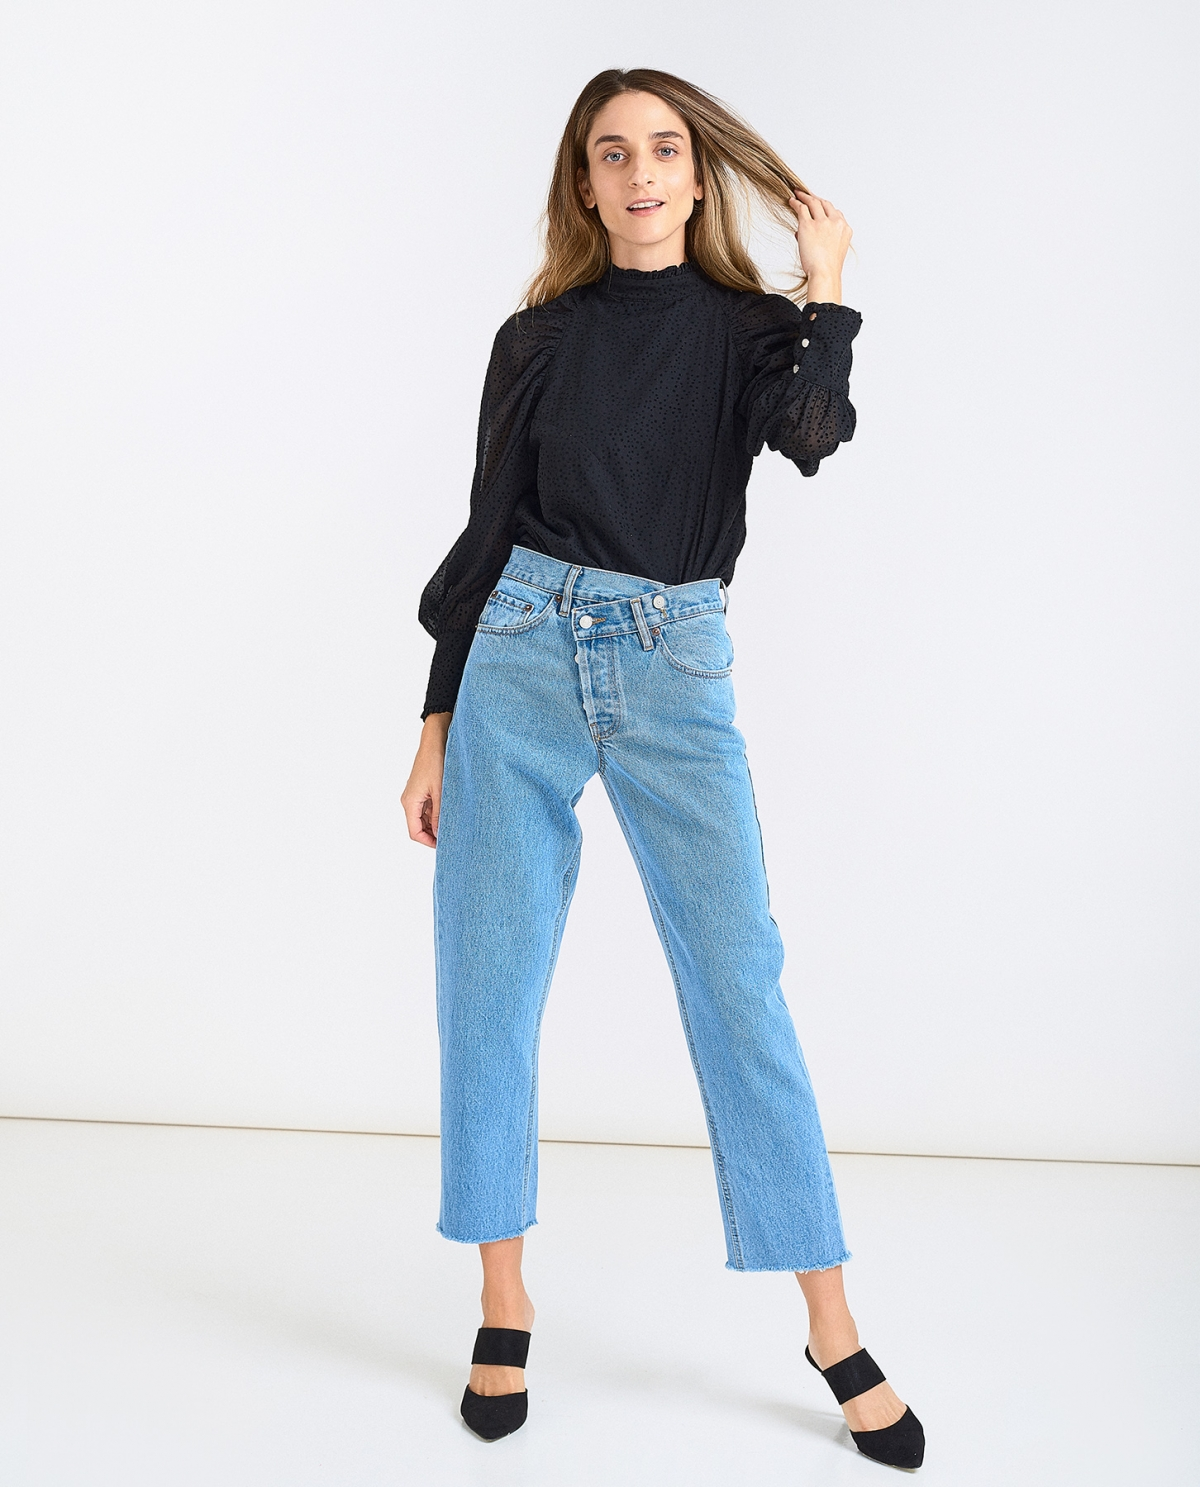 Barbara Crooked Medium Jeans